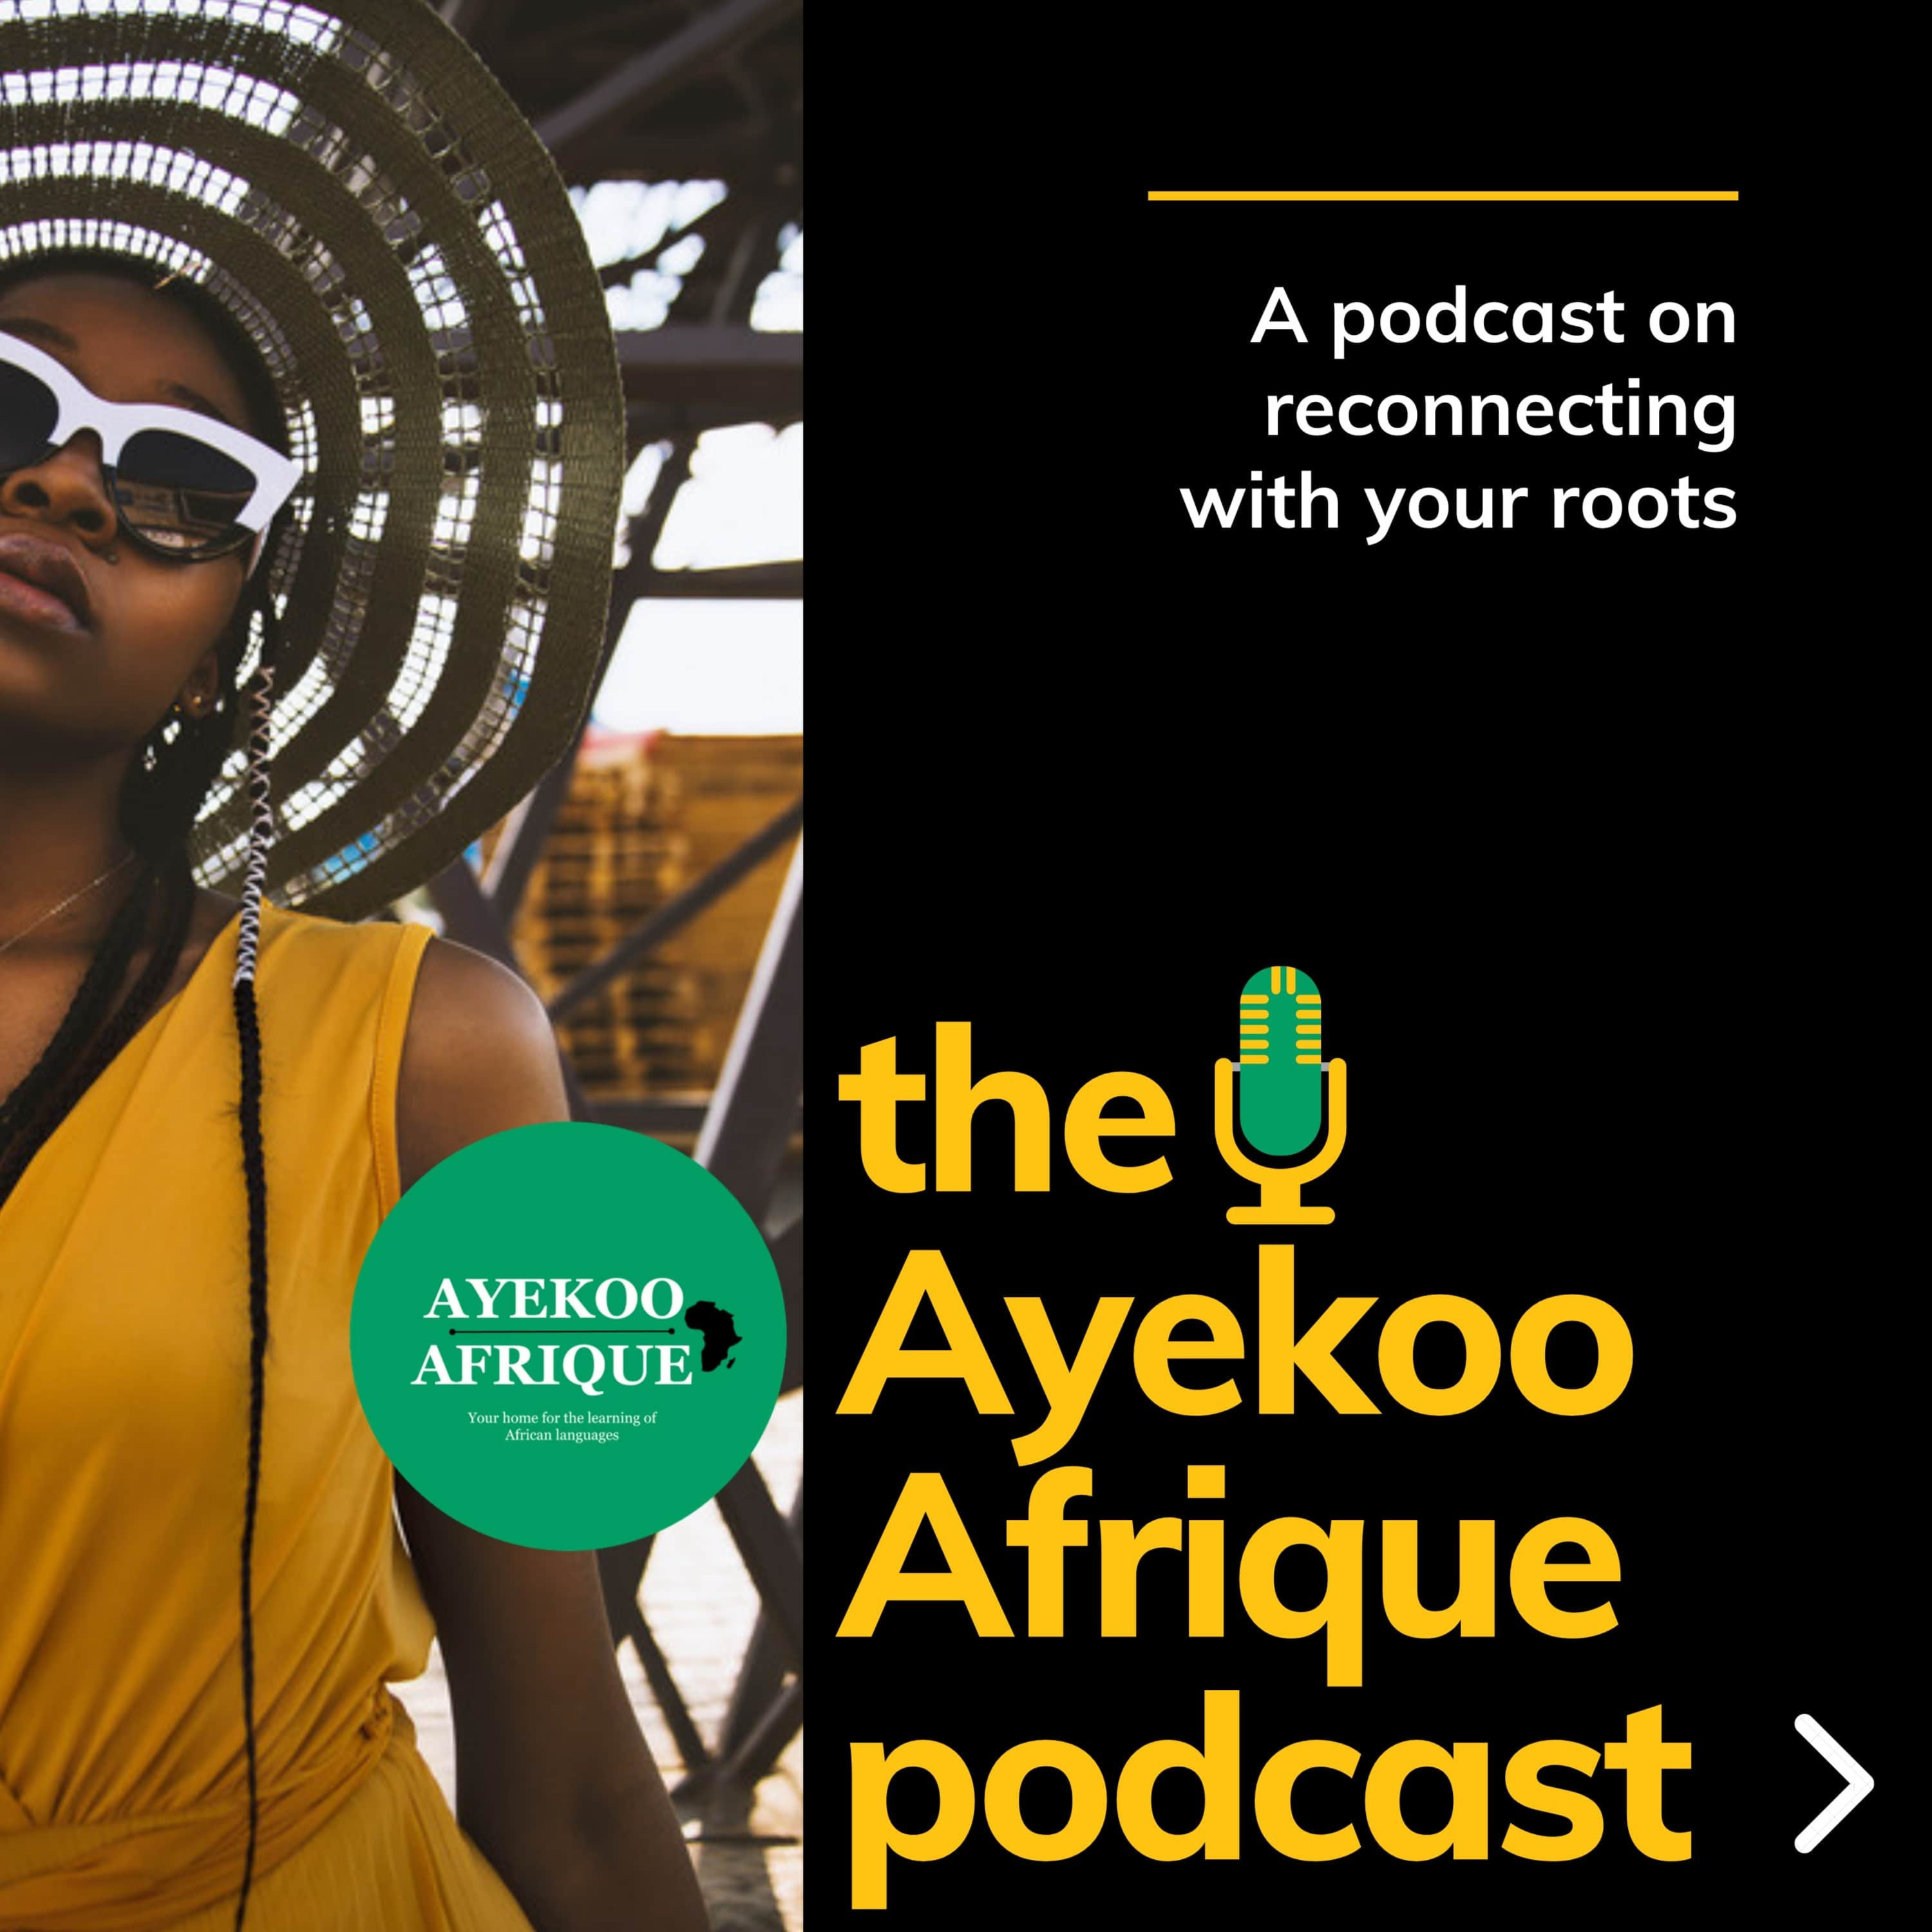 The Ayekoo Afrique podcast